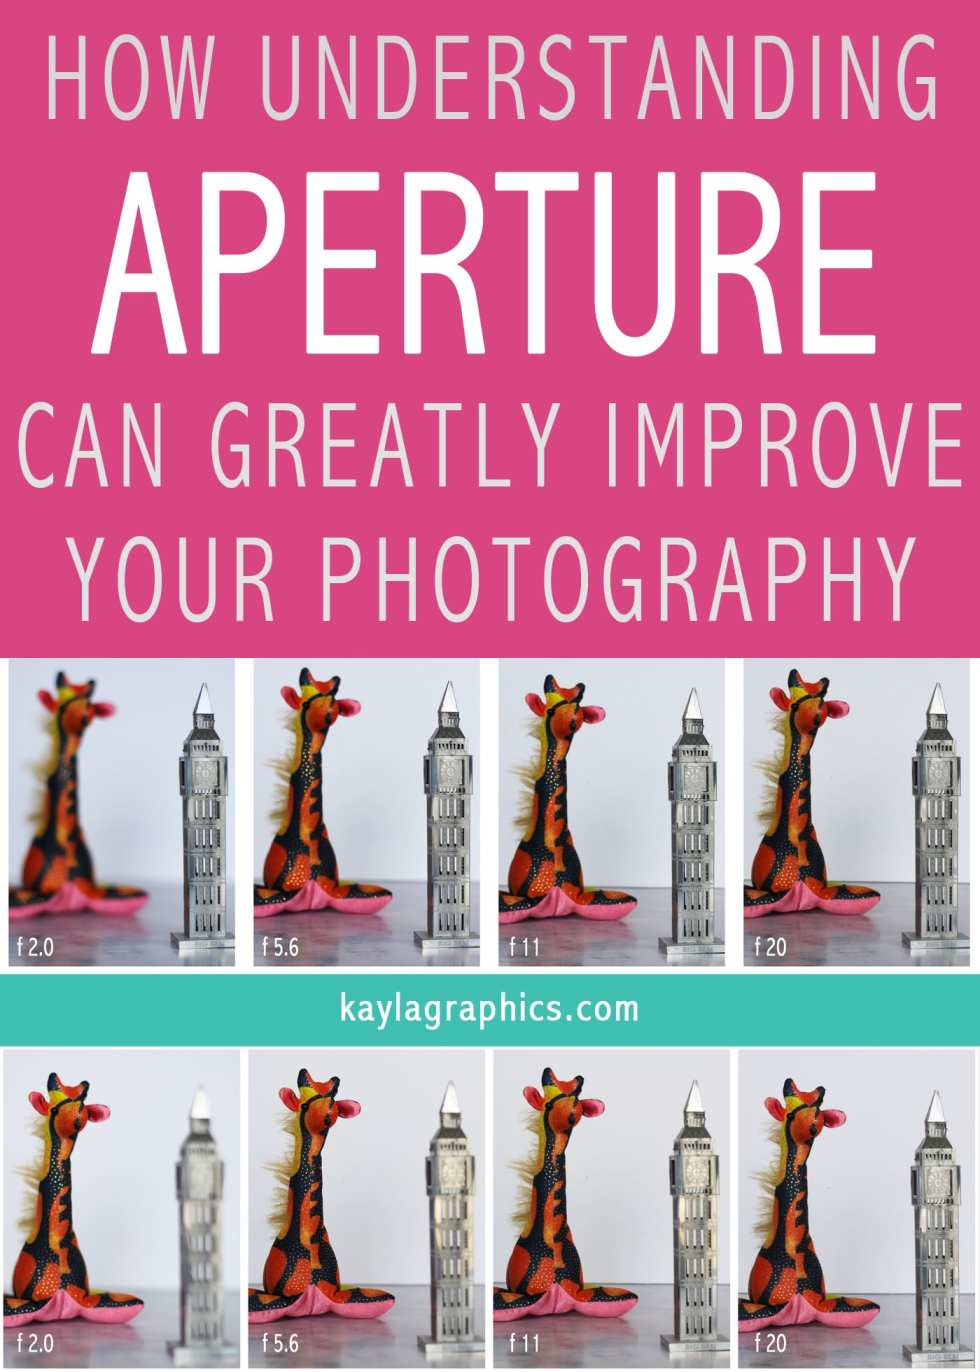 how understanding aperture can greatly improve photography